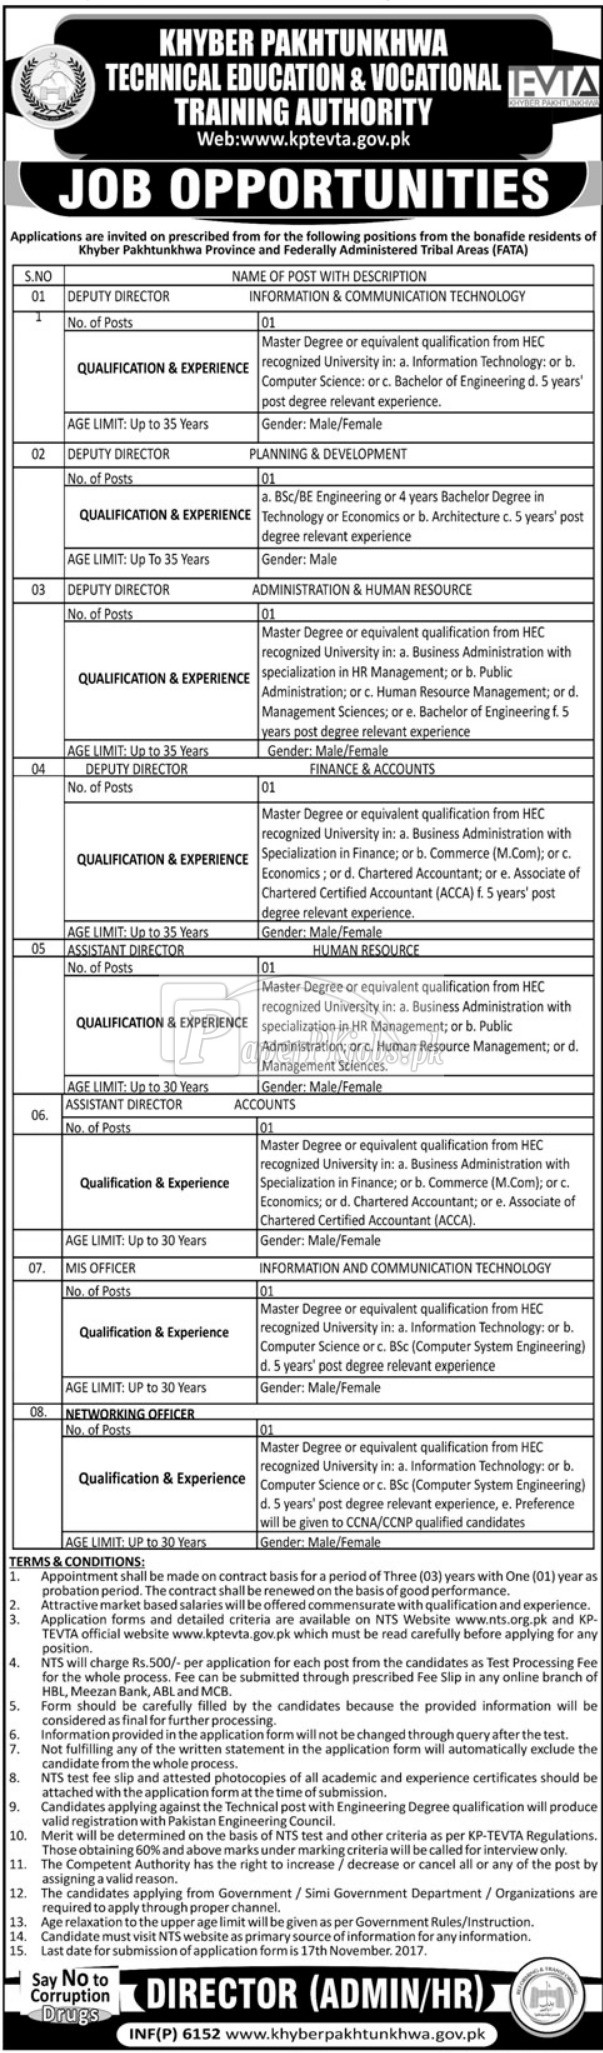 Khyber Pakhtunkhwa Technical & Vocational Training Authority KPTEVTA NTS Jobs 2017